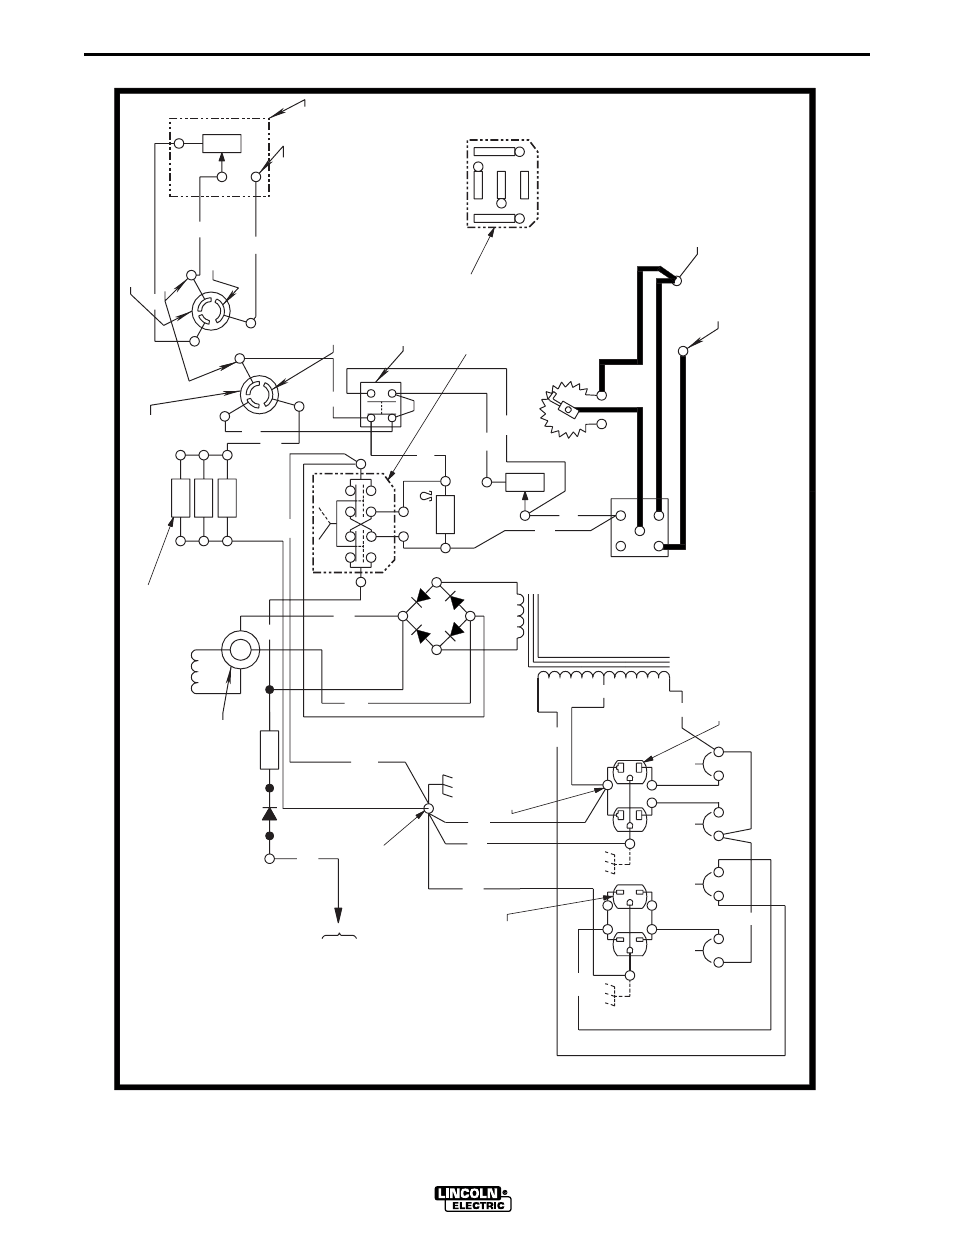 Sa 200 Wiring Diagram Lincoln 225 Arc Welder Diagram Wiring – Lincoln 225 S Wiring Diagram